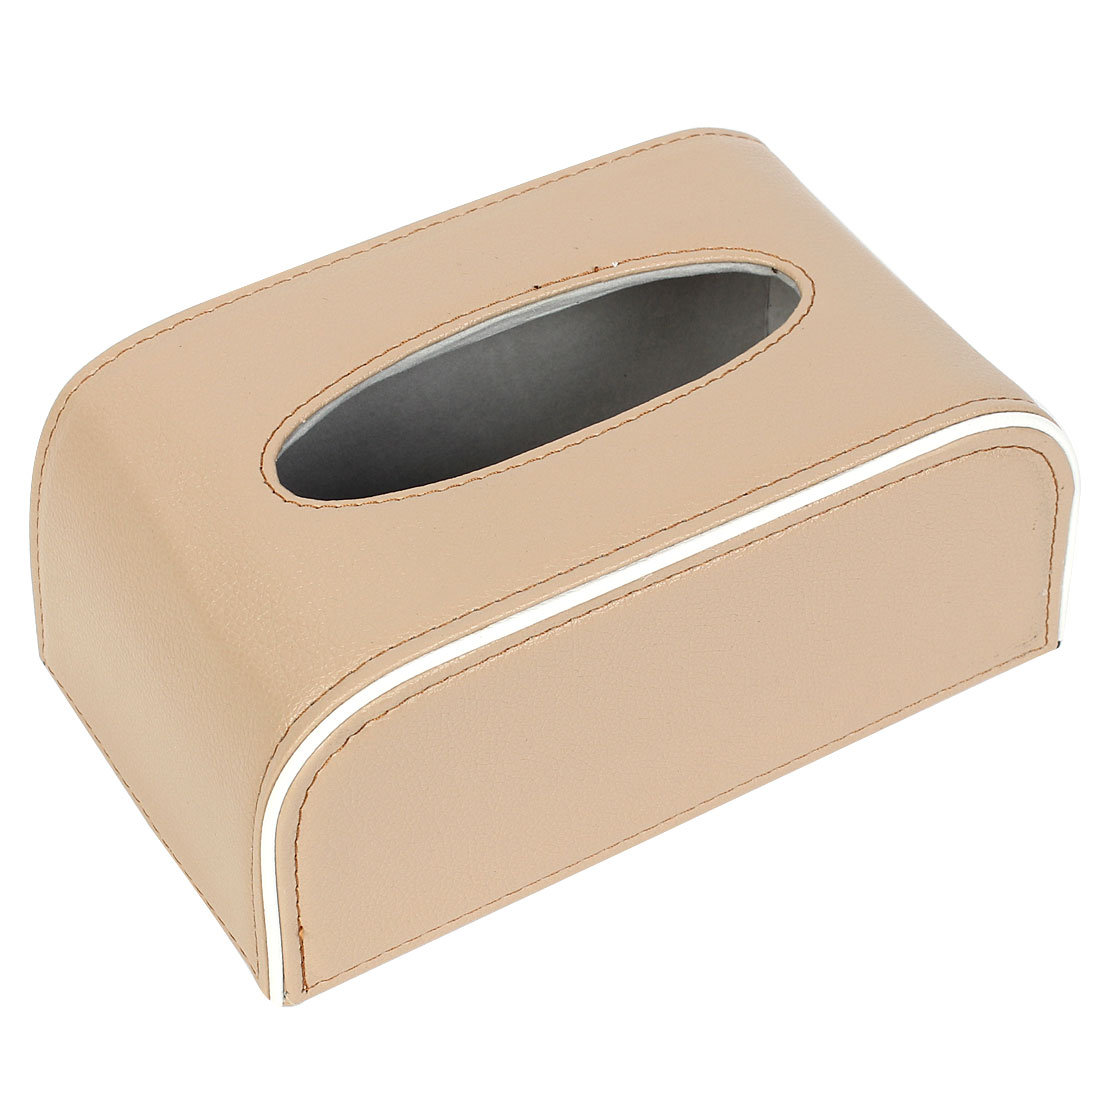 Beige White Faux Leather Rectangular Tissue Box Holder Case 21cm x 12.5cm x 9cm